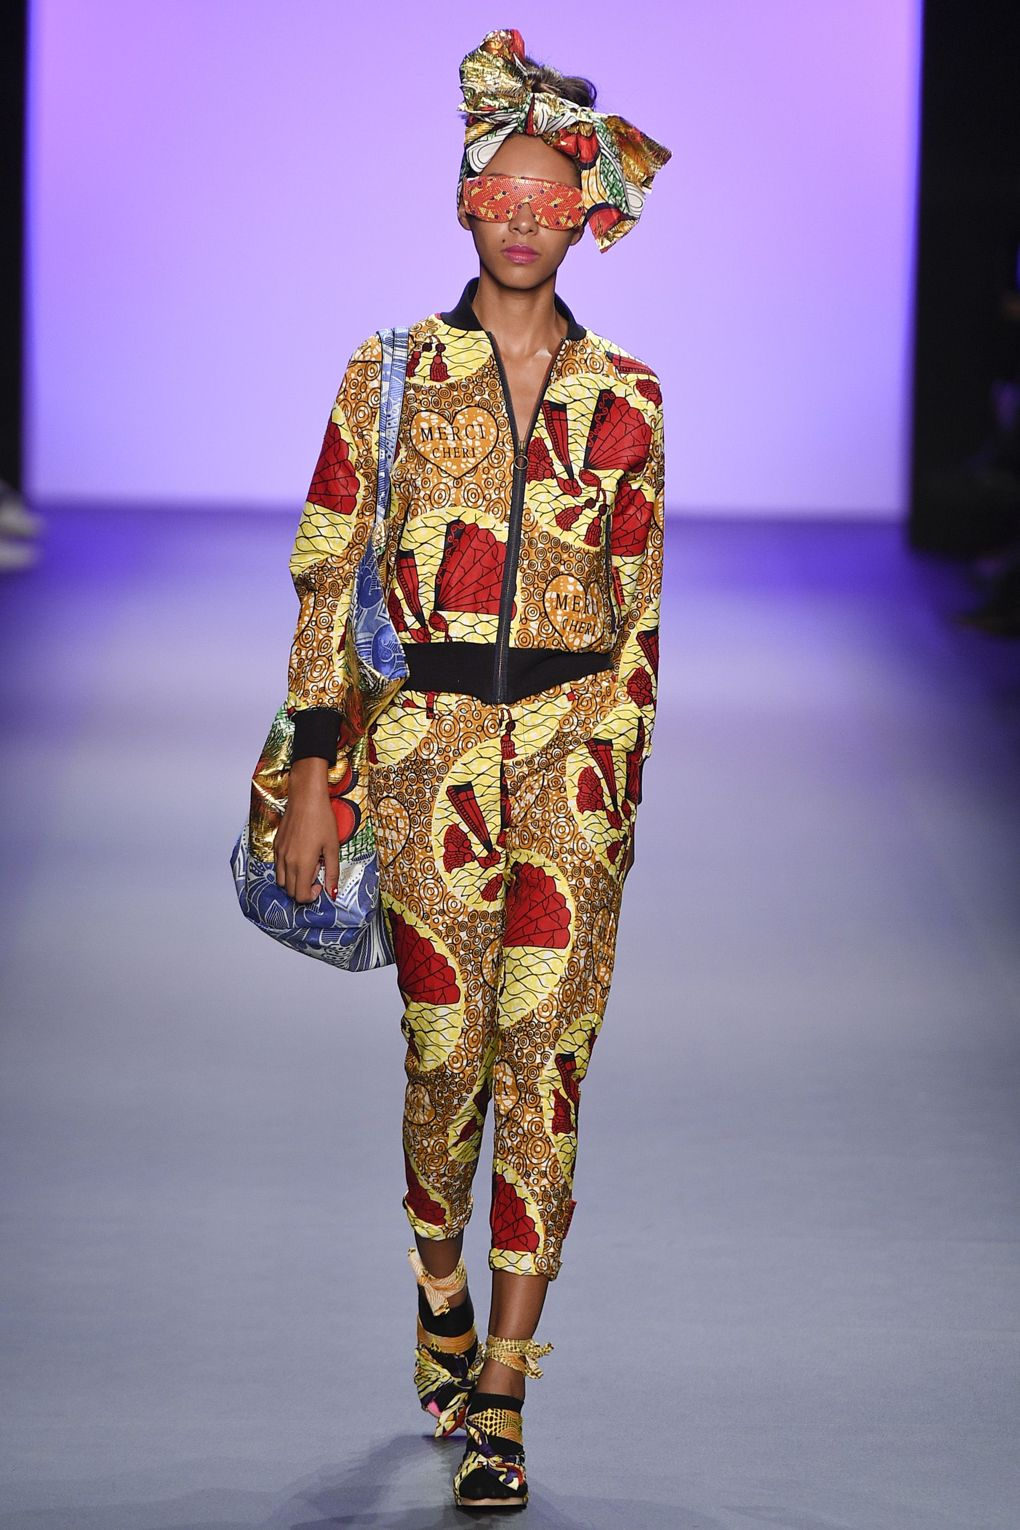 fashion-week-xuly-be%cc%88t-xuly-be%cc%88t-sprigsummer-2017-ready-to-wear-collection-0